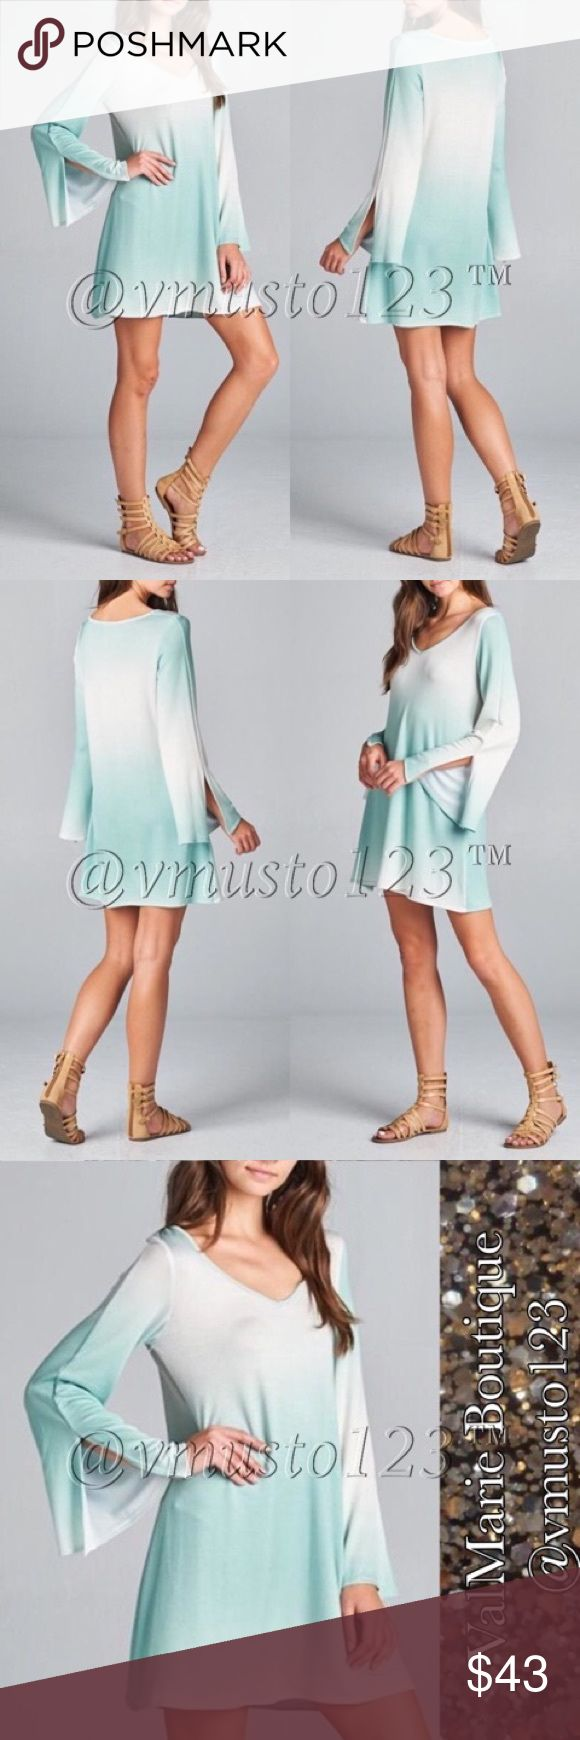 """MINT OMBRÉ LONG SLEEVE MINI DRESS 🇺🇸MADE IN USA - This STUNNING mint long sleeve dress features an ombre colored design, loose fit, v-neck and bell sleeves with an 8 slit on the sleeves. So gorgeous and on trend and so soft and comfortable! TTS S(2-4) M(6-8) L(10-12) 95% poly, 5% spandex. 34"""" - PRICE FIRM UNLESS BUNDLED. Perfect fashion for Easter Memorial Day spring break Coachella festival wedding vacation lounging date night anniversary birthday present gift comfortable sexy cute dress…"""